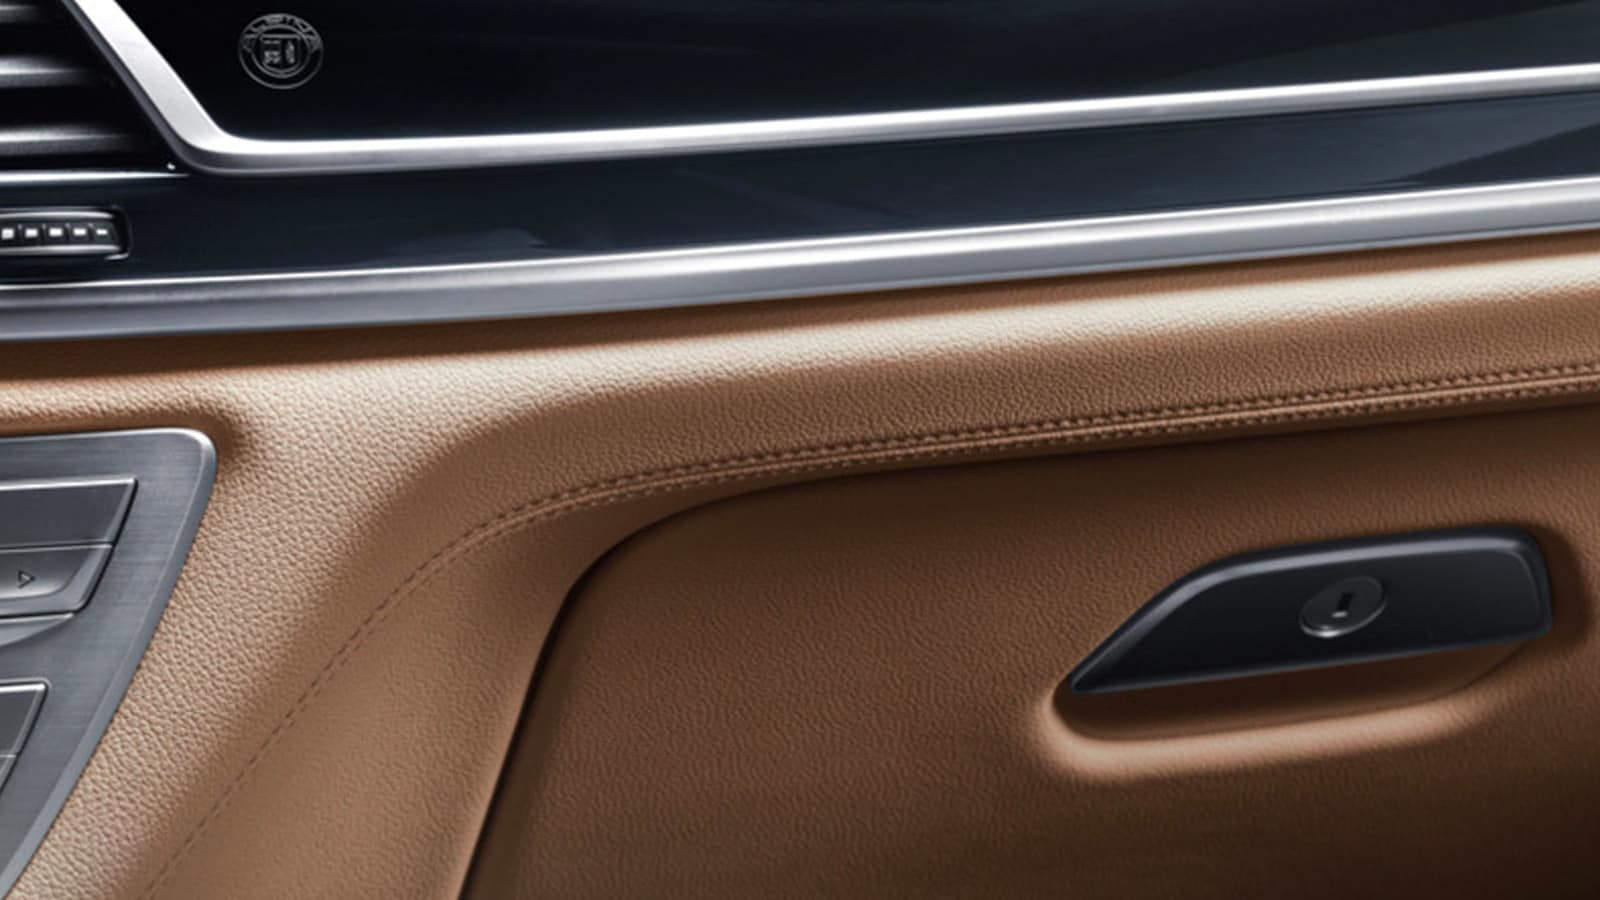 Luxurious Surroundings in the 2019 BMW 7 Series